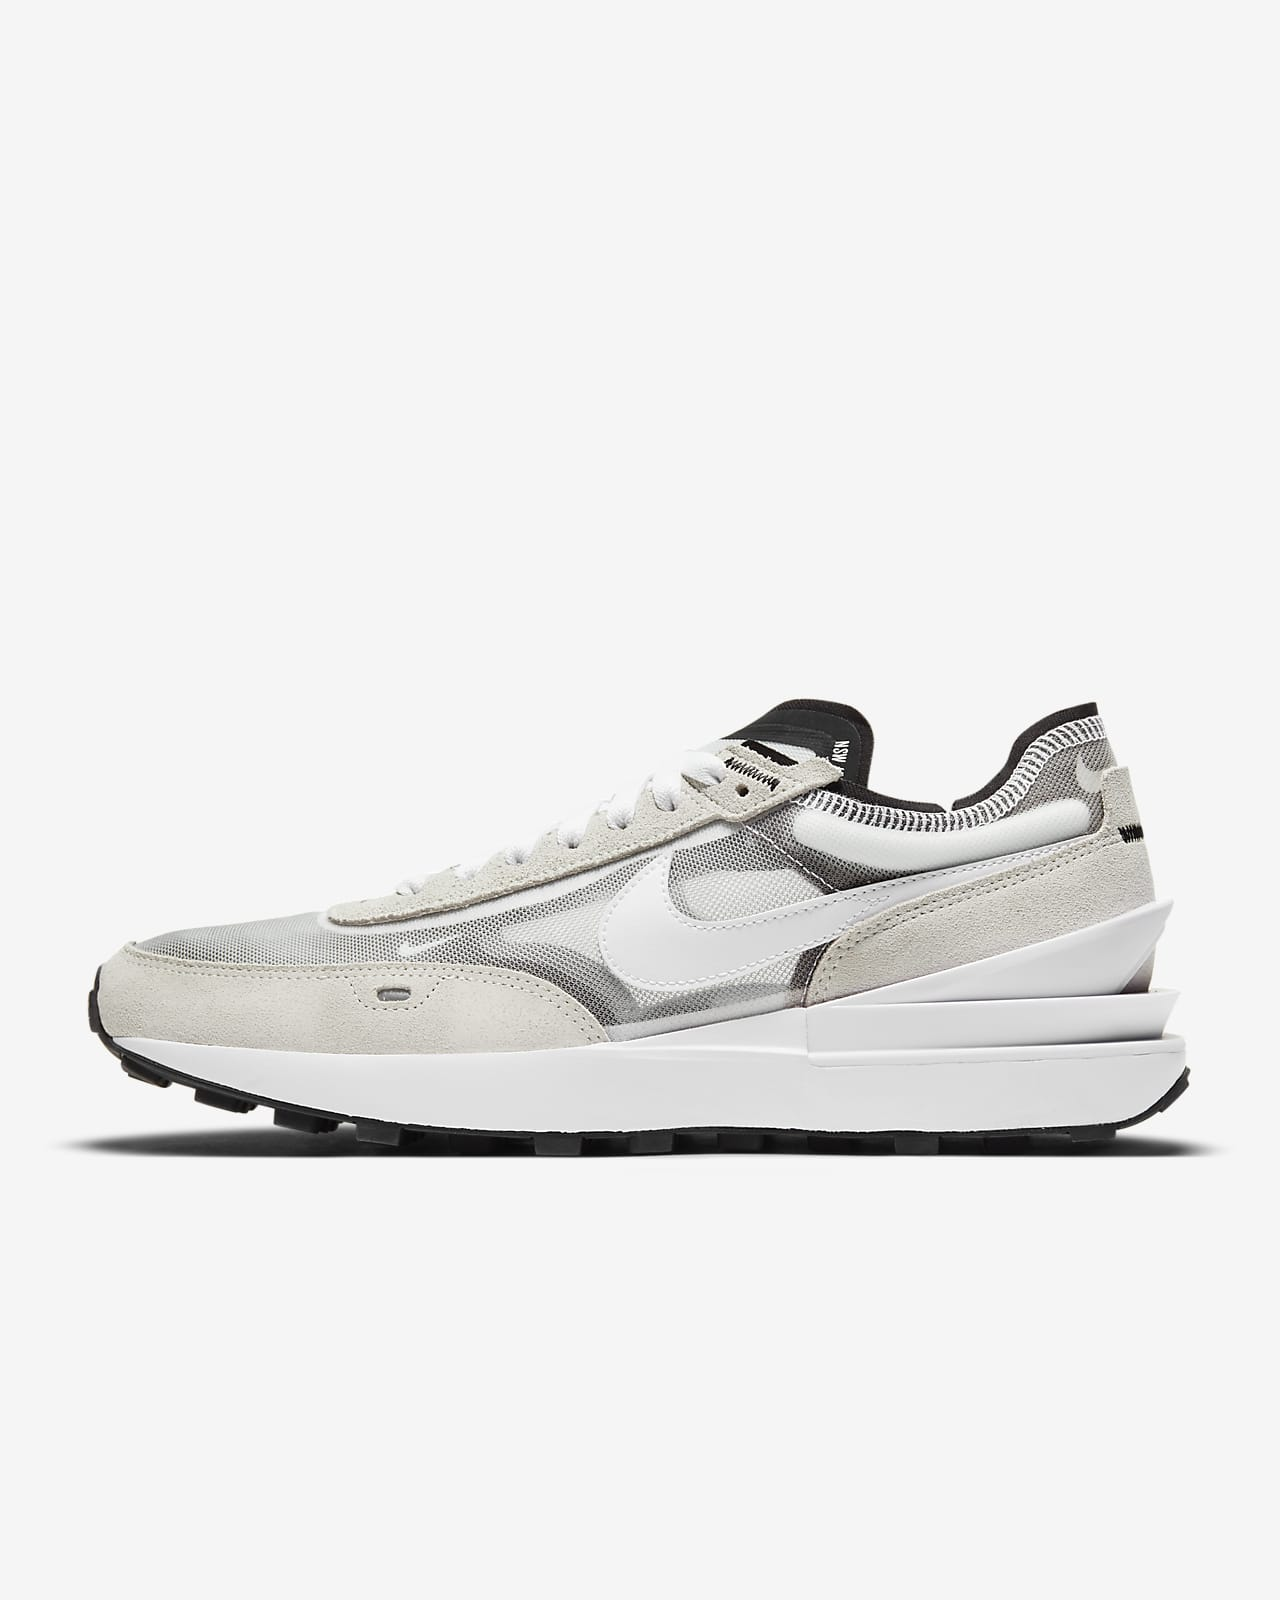 Chaussure Nike Waffle One pour Homme